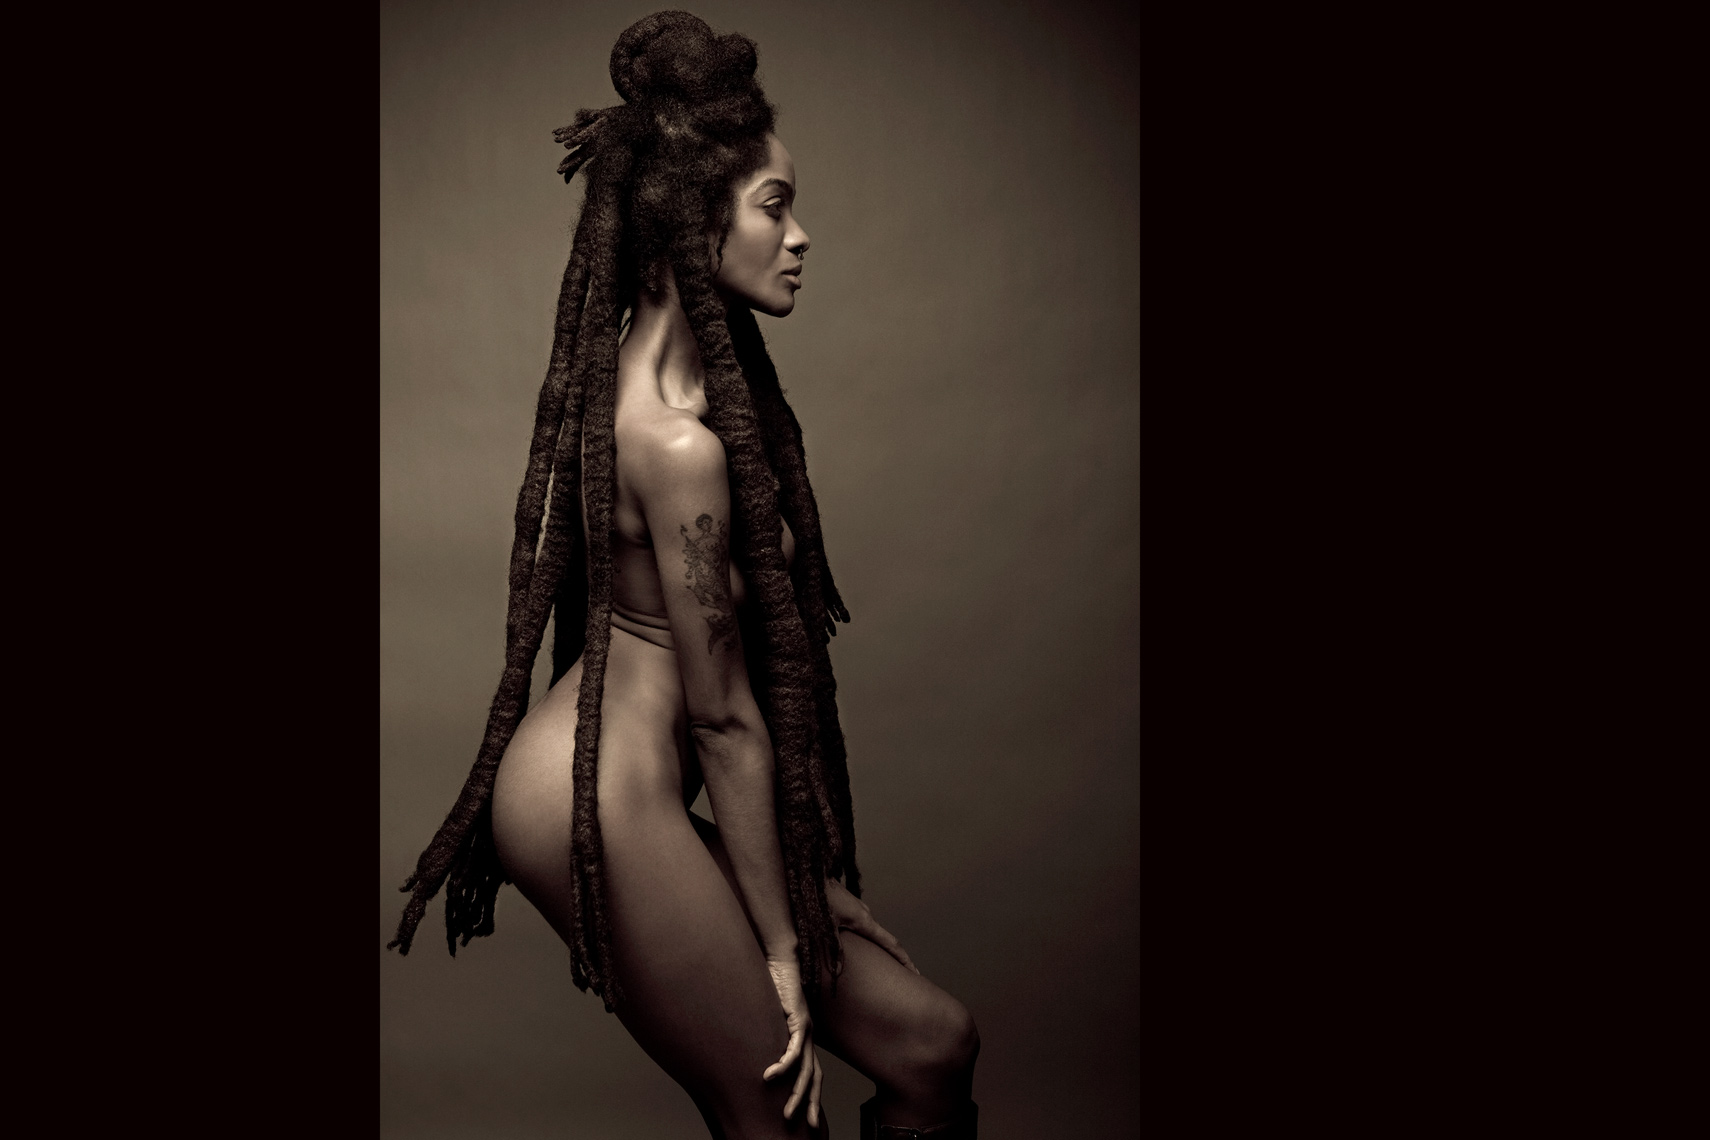 Los Angeles Portrait Photography, Michael Brian, pet, cat, Nude African American female, long dreads, studio beauty portrait